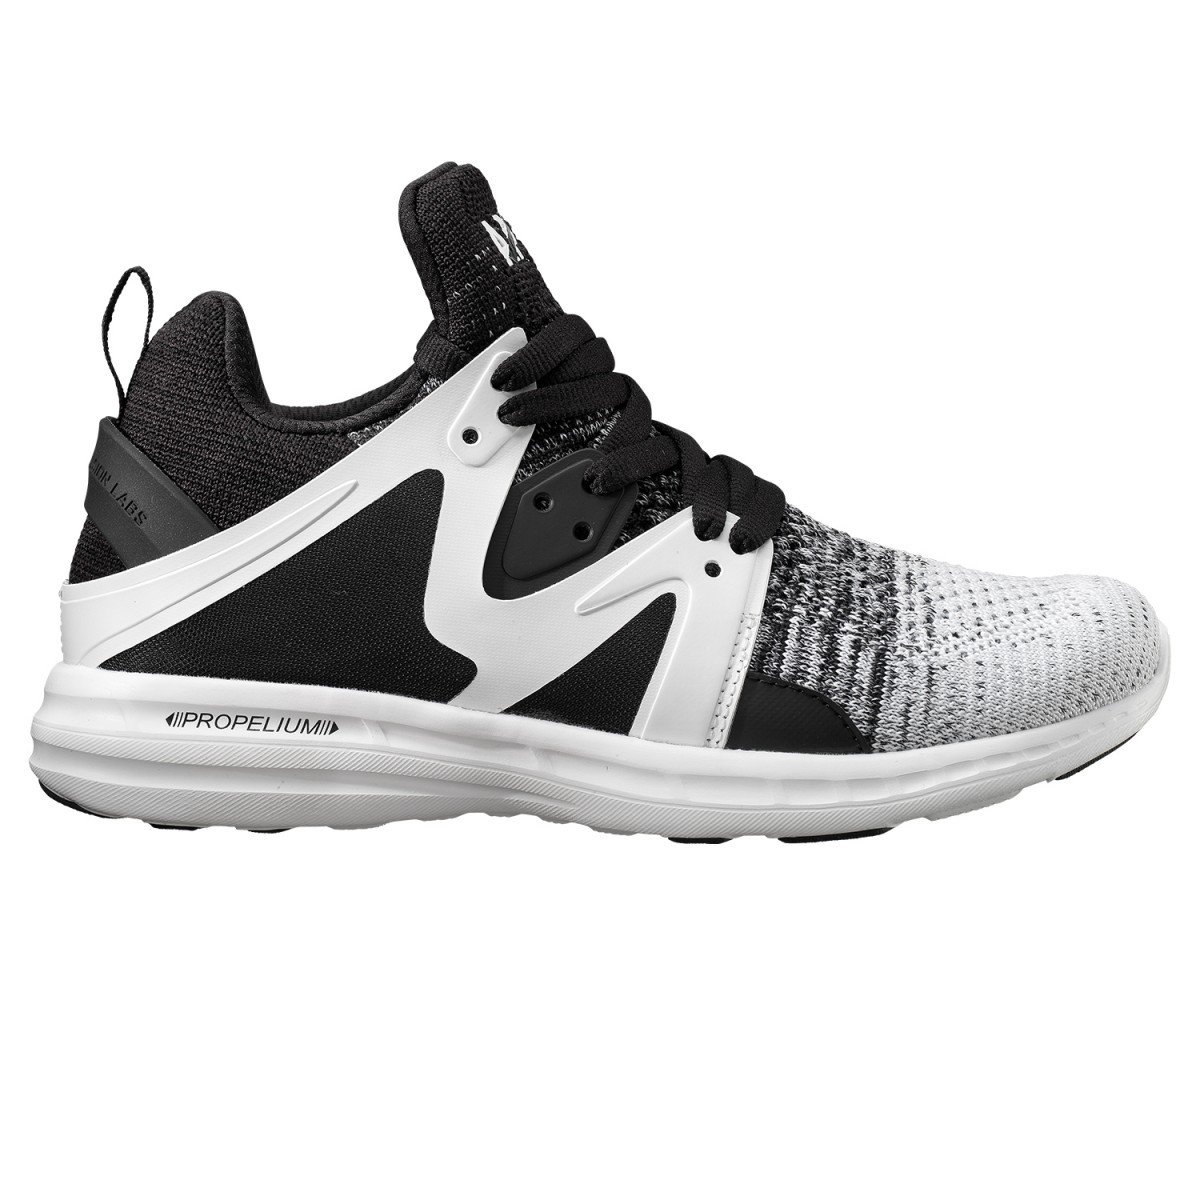 While the Ascend is also the ideal training shoe. It s the most efficient  for one s boot camp circuit training needs. The shoe is designed to offer  ... ba15d8e2f857